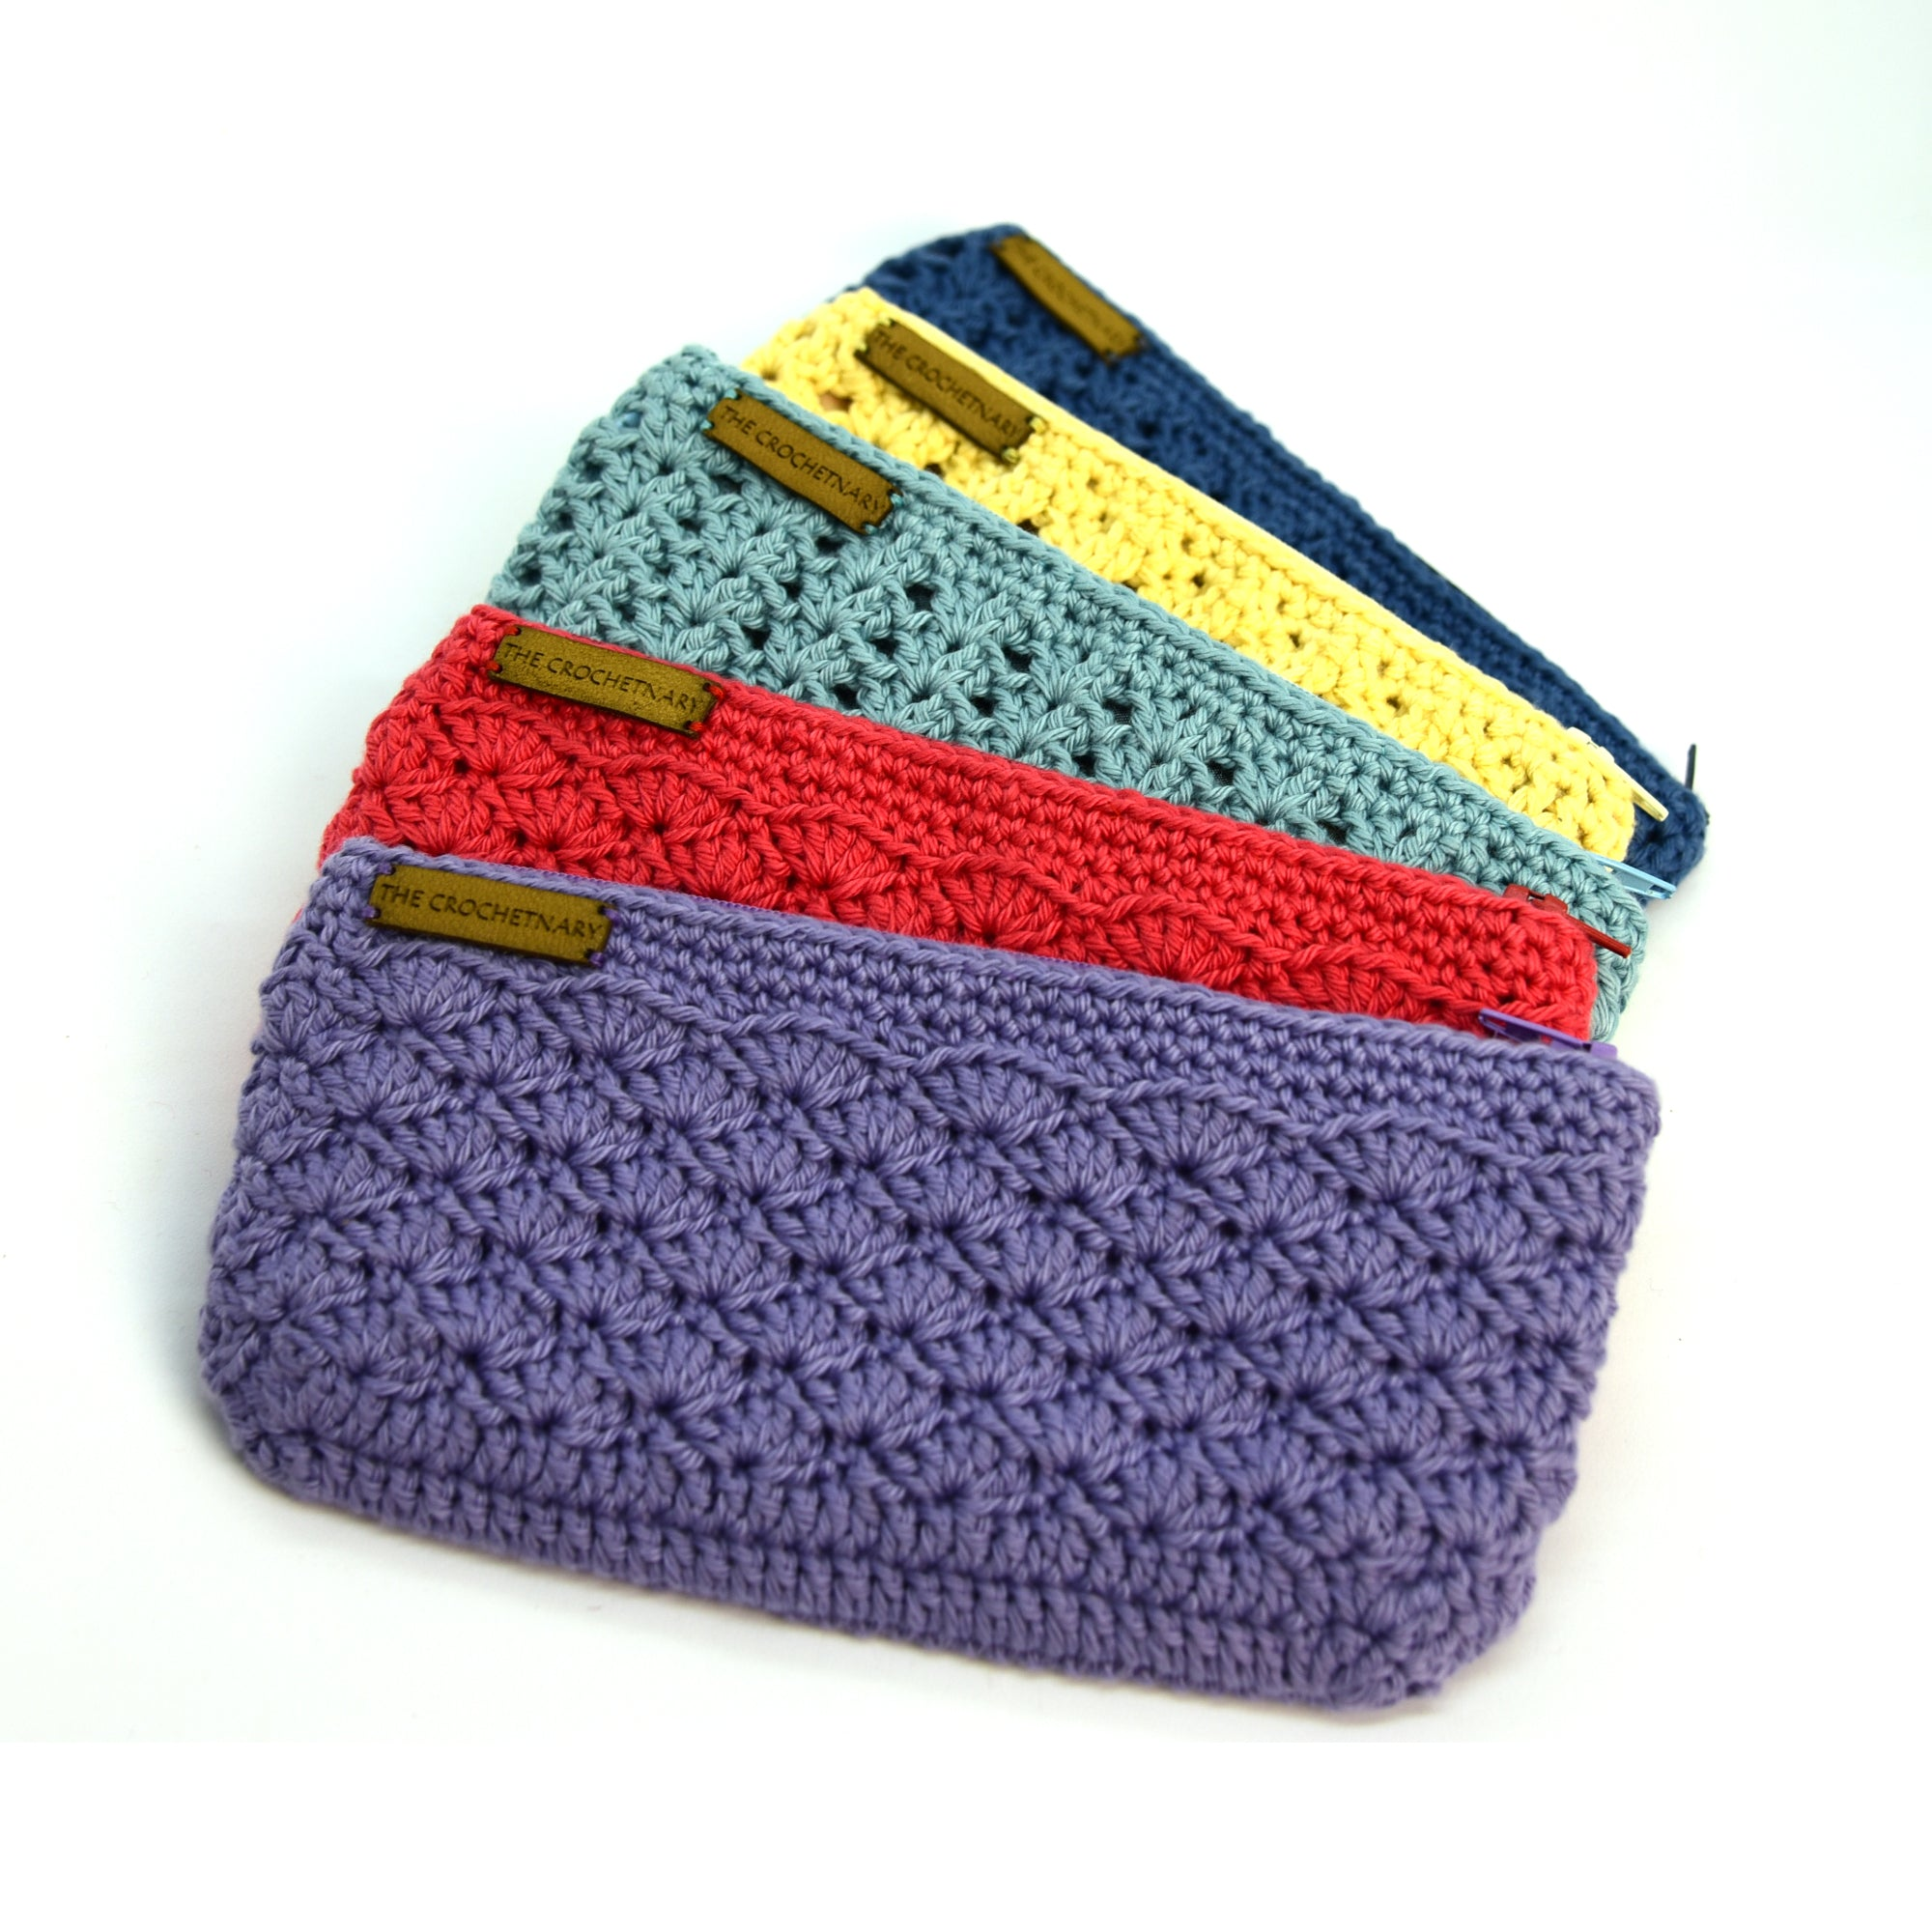 Crochet Pouch - Medium - Lemon